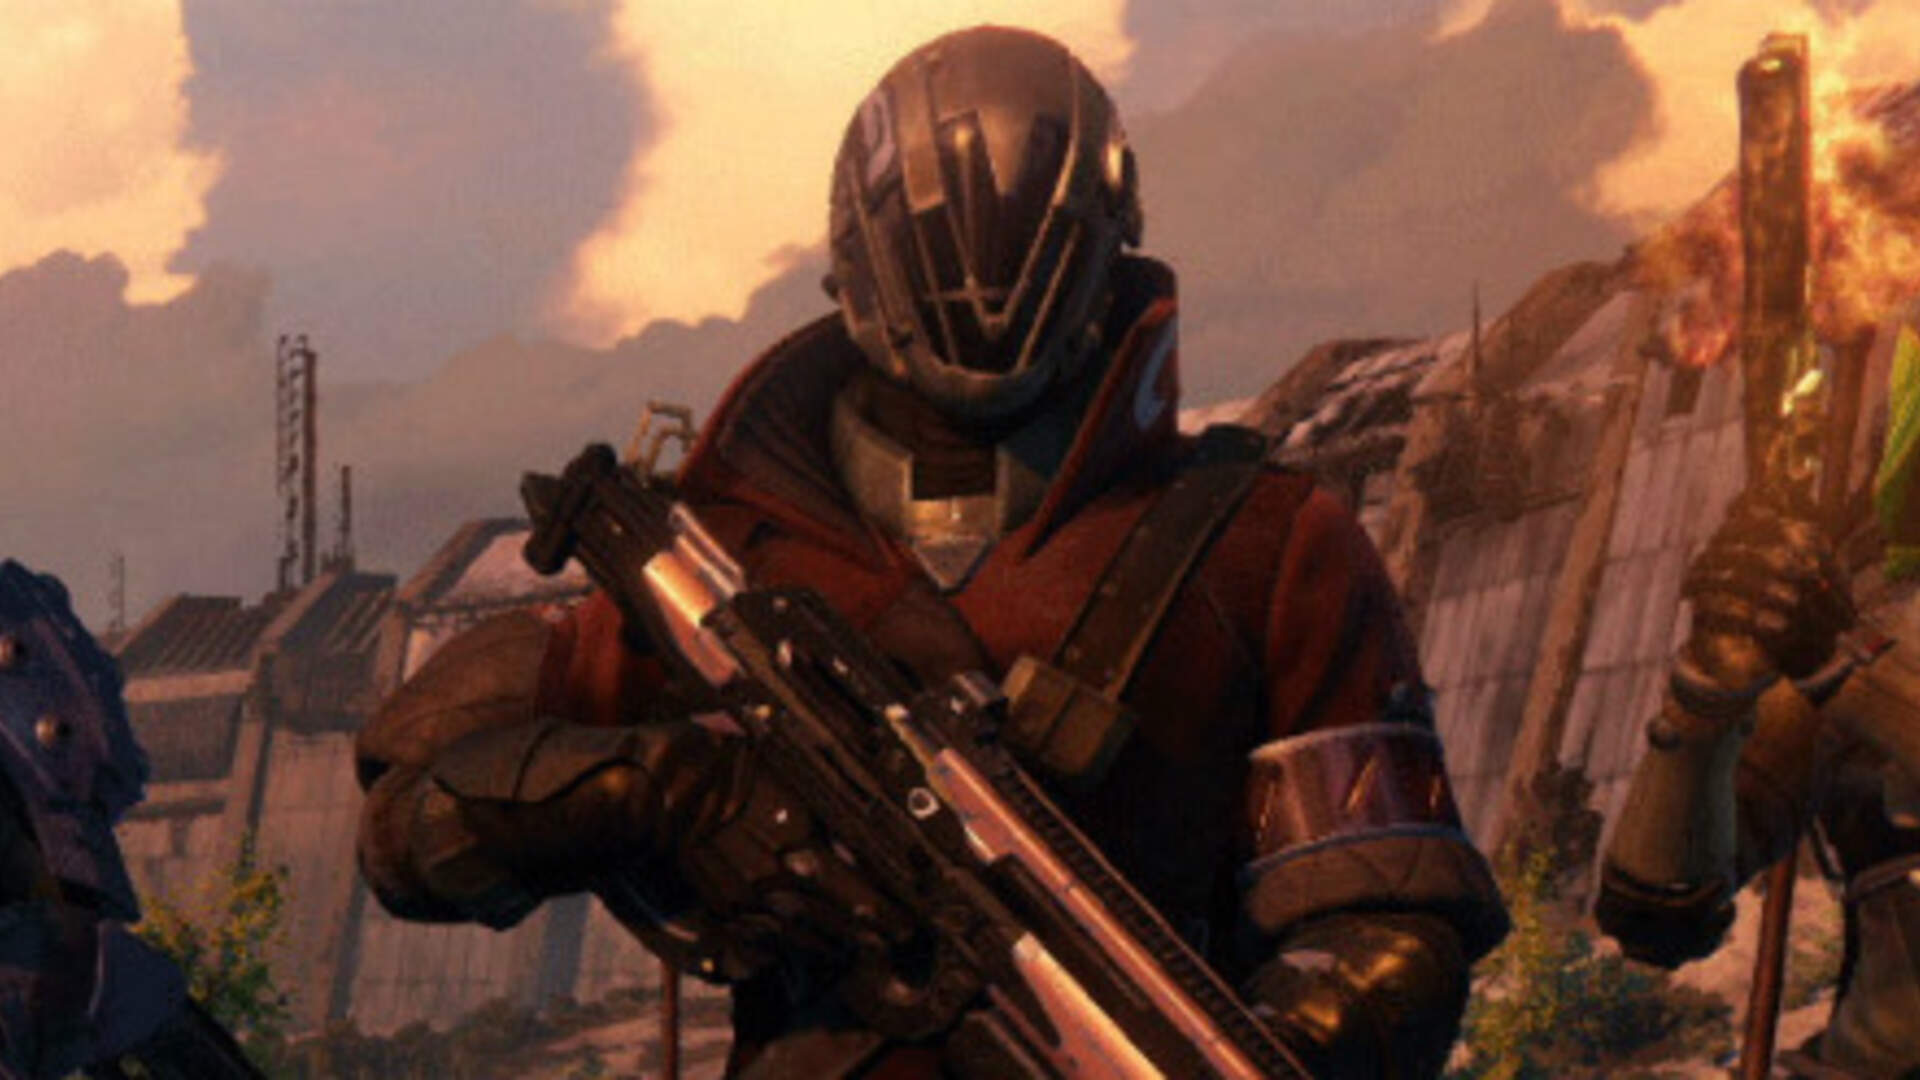 Destiny PS4 Review: Looks Epic, Feels Incomplete